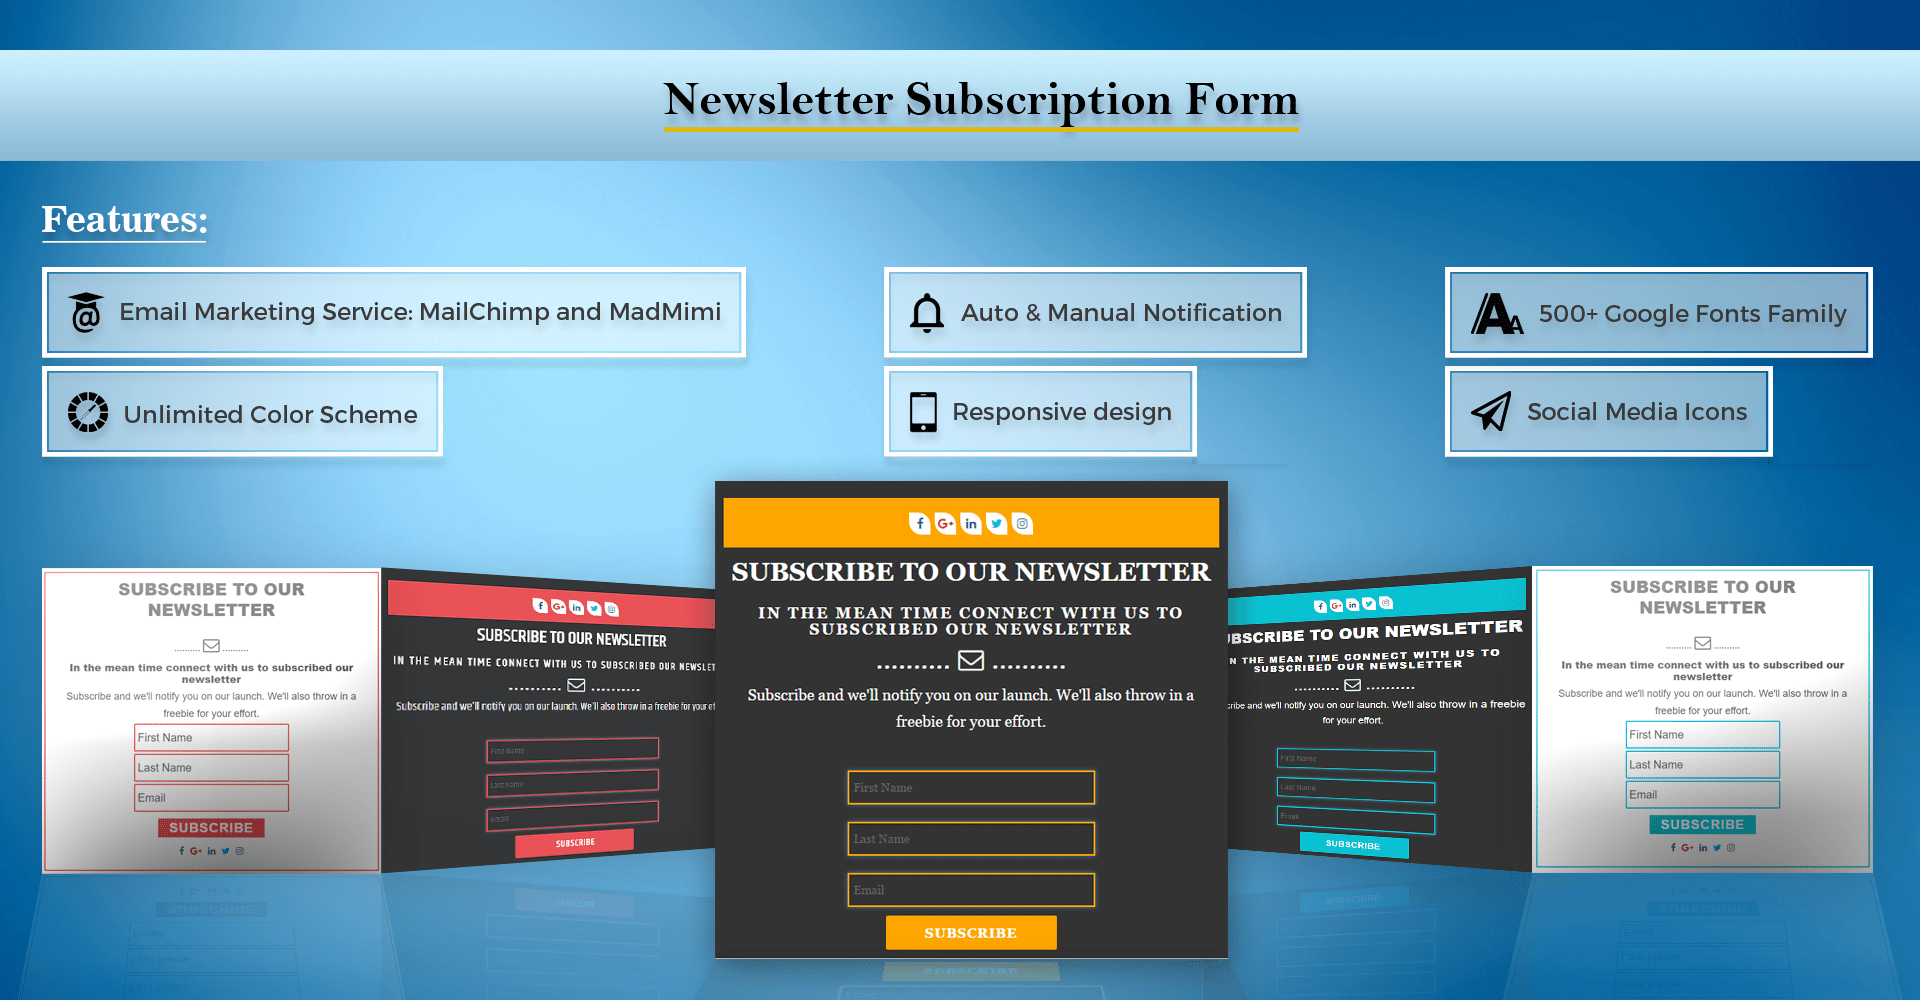 Newsletter Subscription Form Plugin for WordPress Users